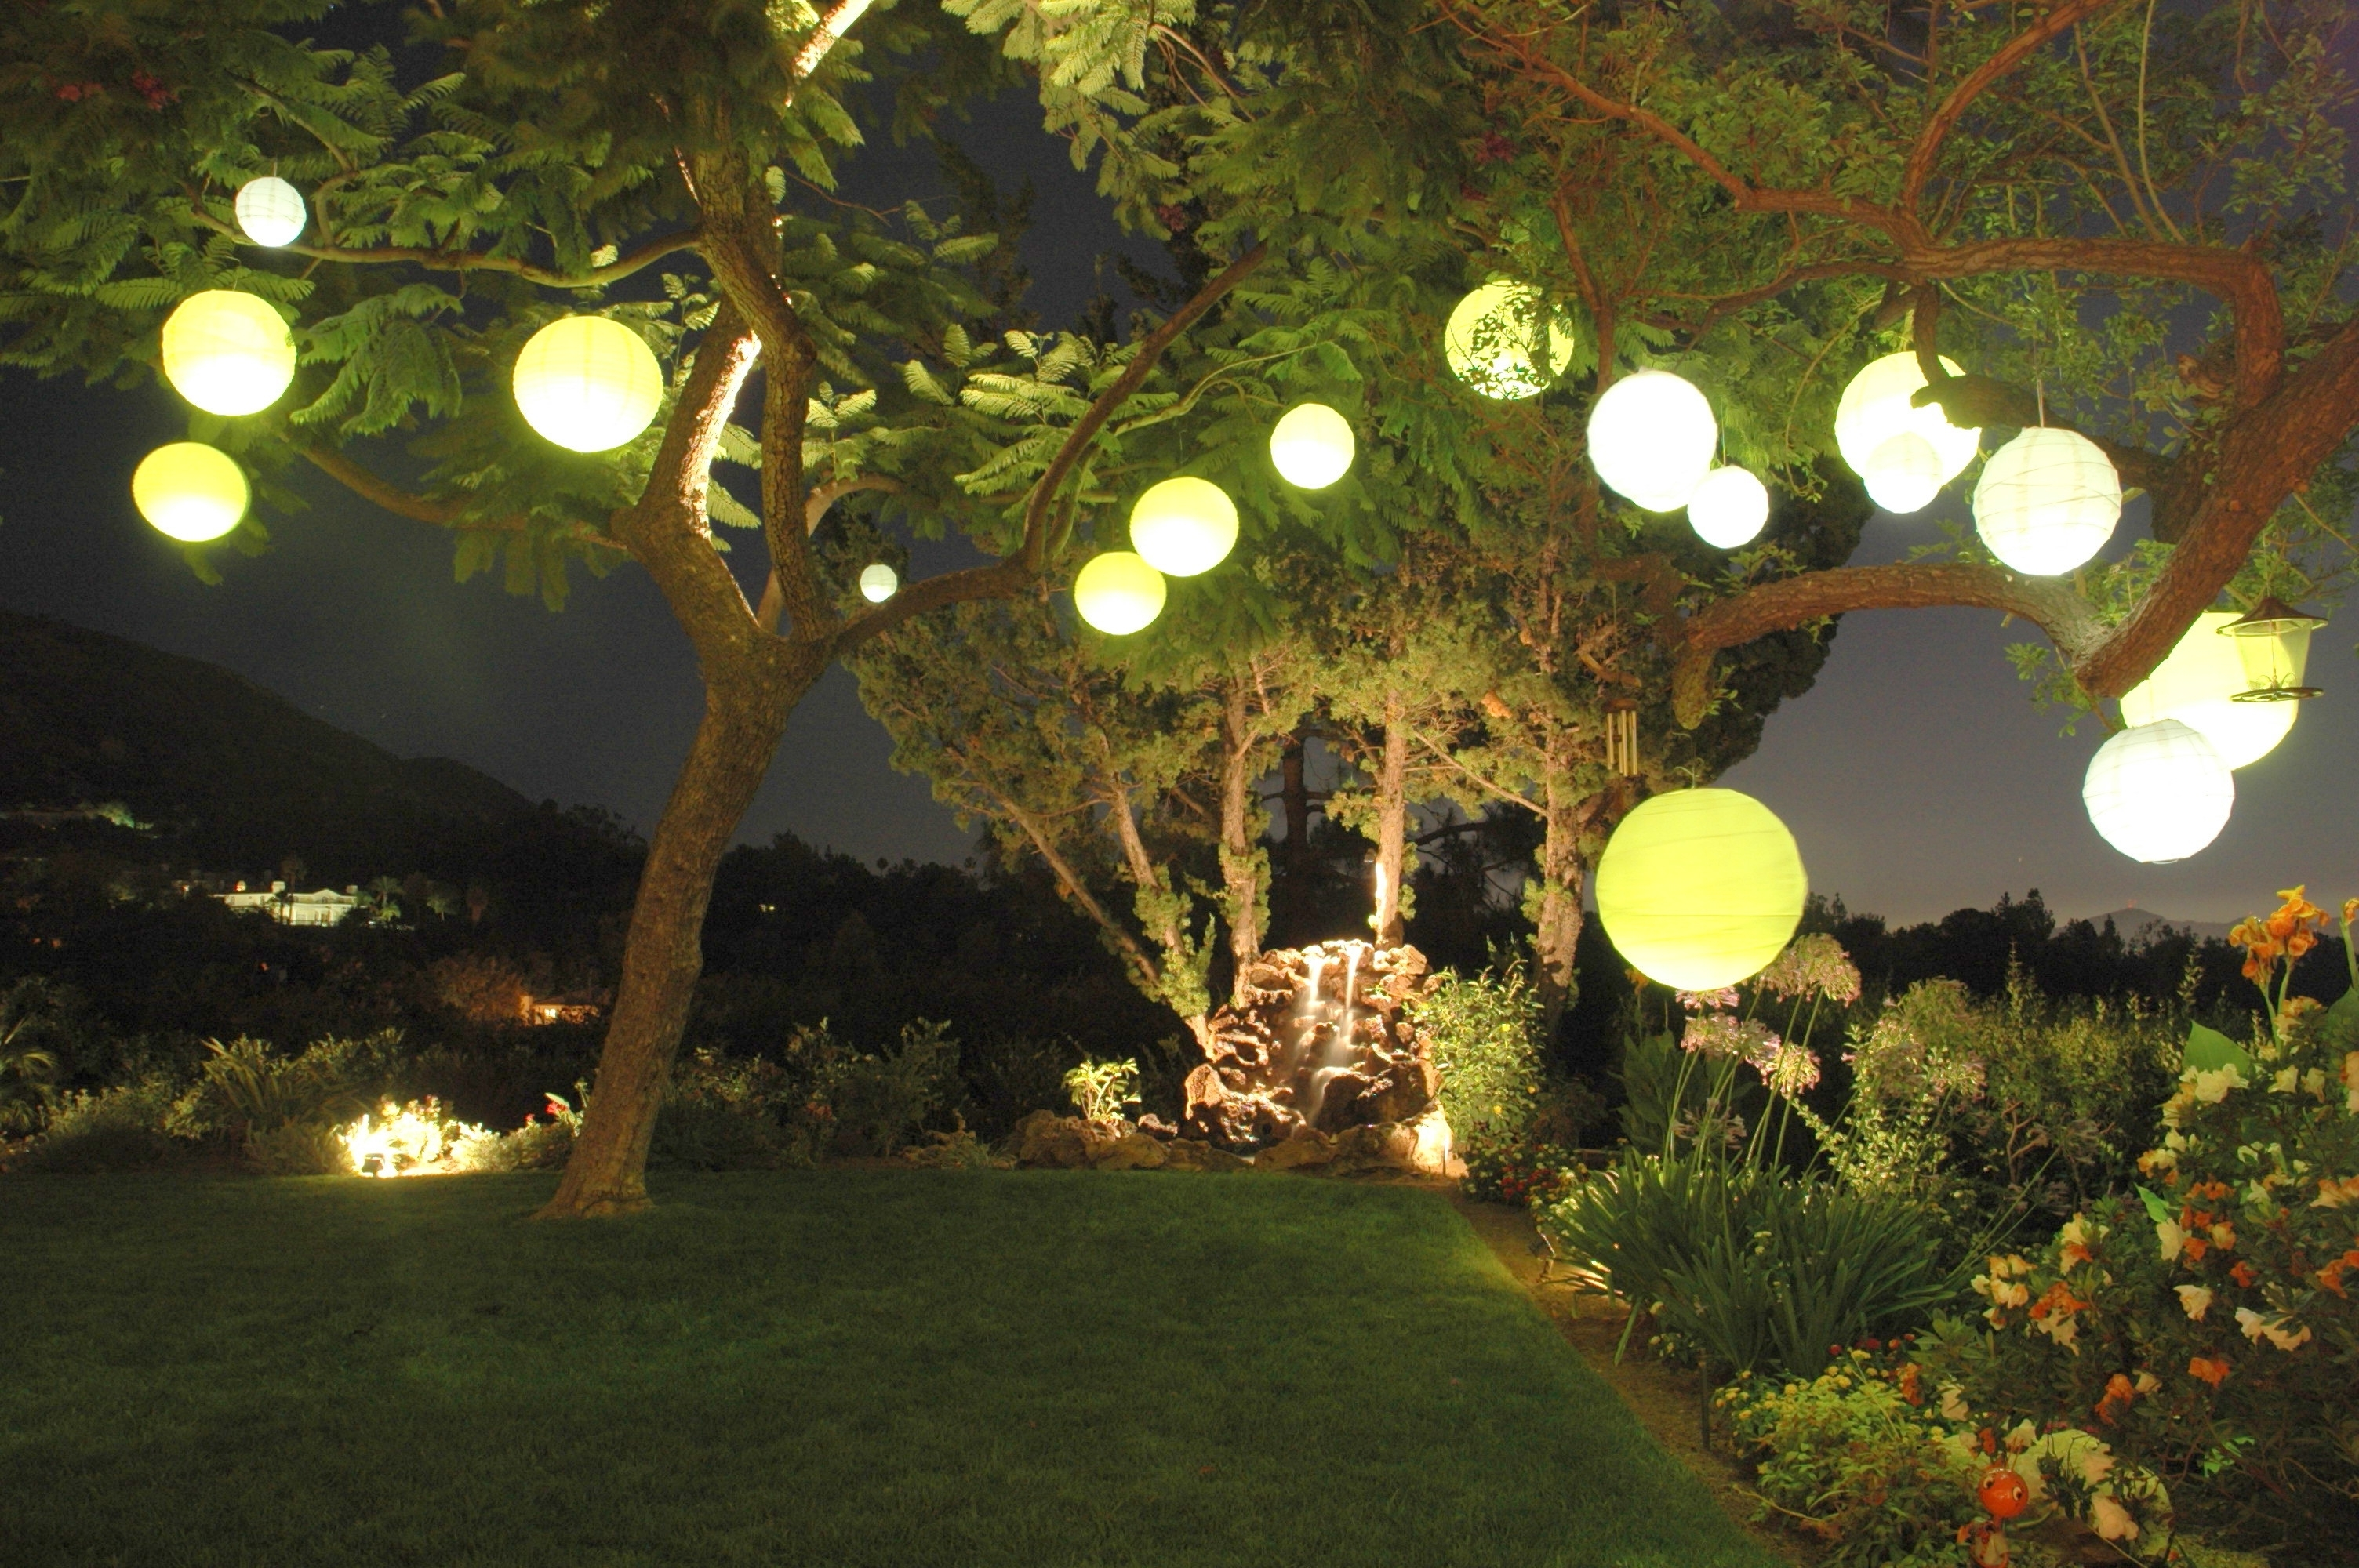 Popular Decorating: Garden Party With Paper Lantern Light Intended For Outdoor Lighting Japanese Lanterns (View 10 of 20)